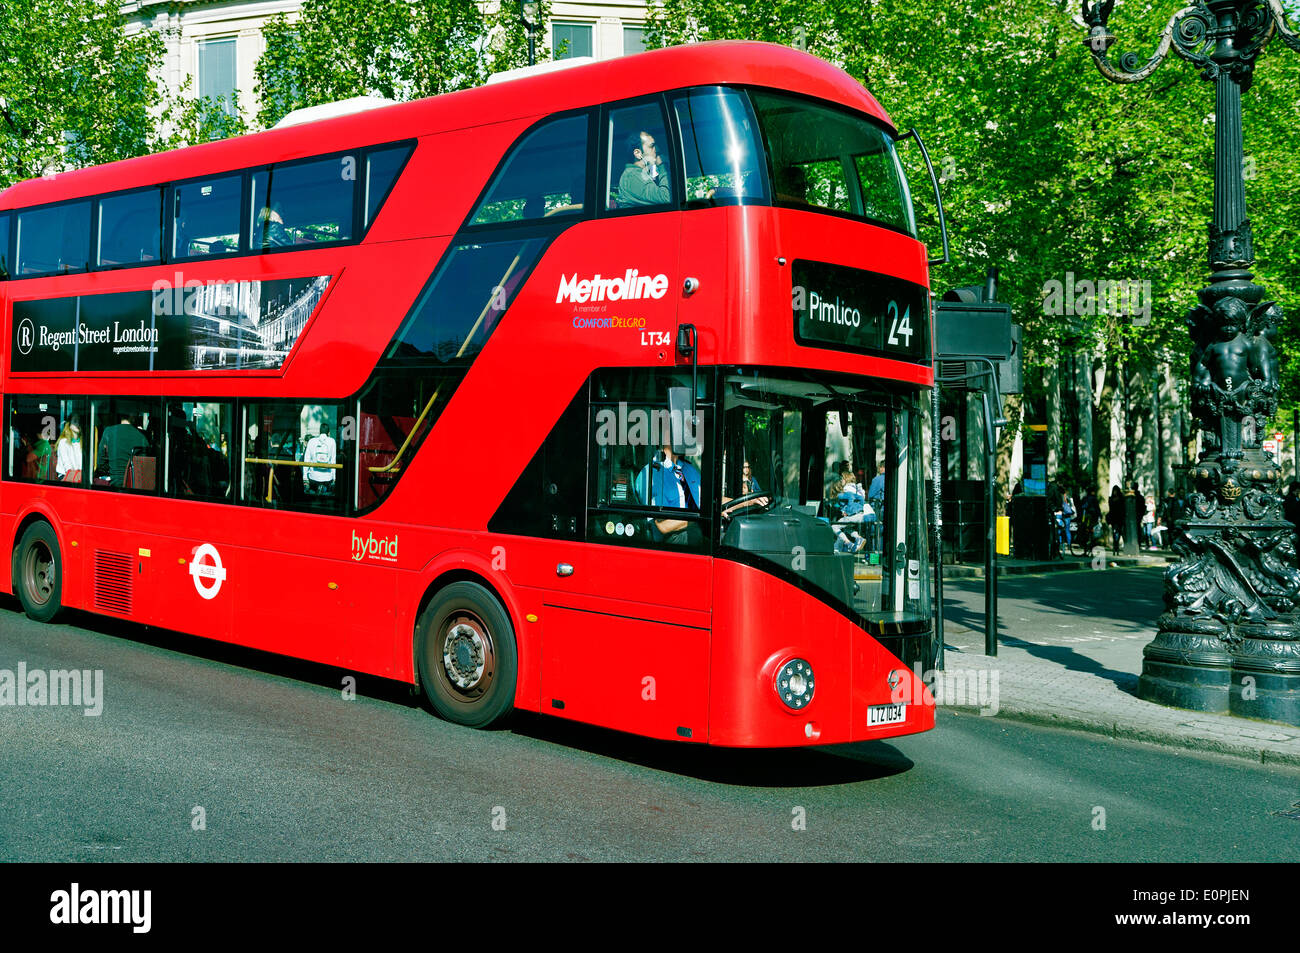 New London Double-decker 'Boris' Bus, London, England, UK - Stock Image